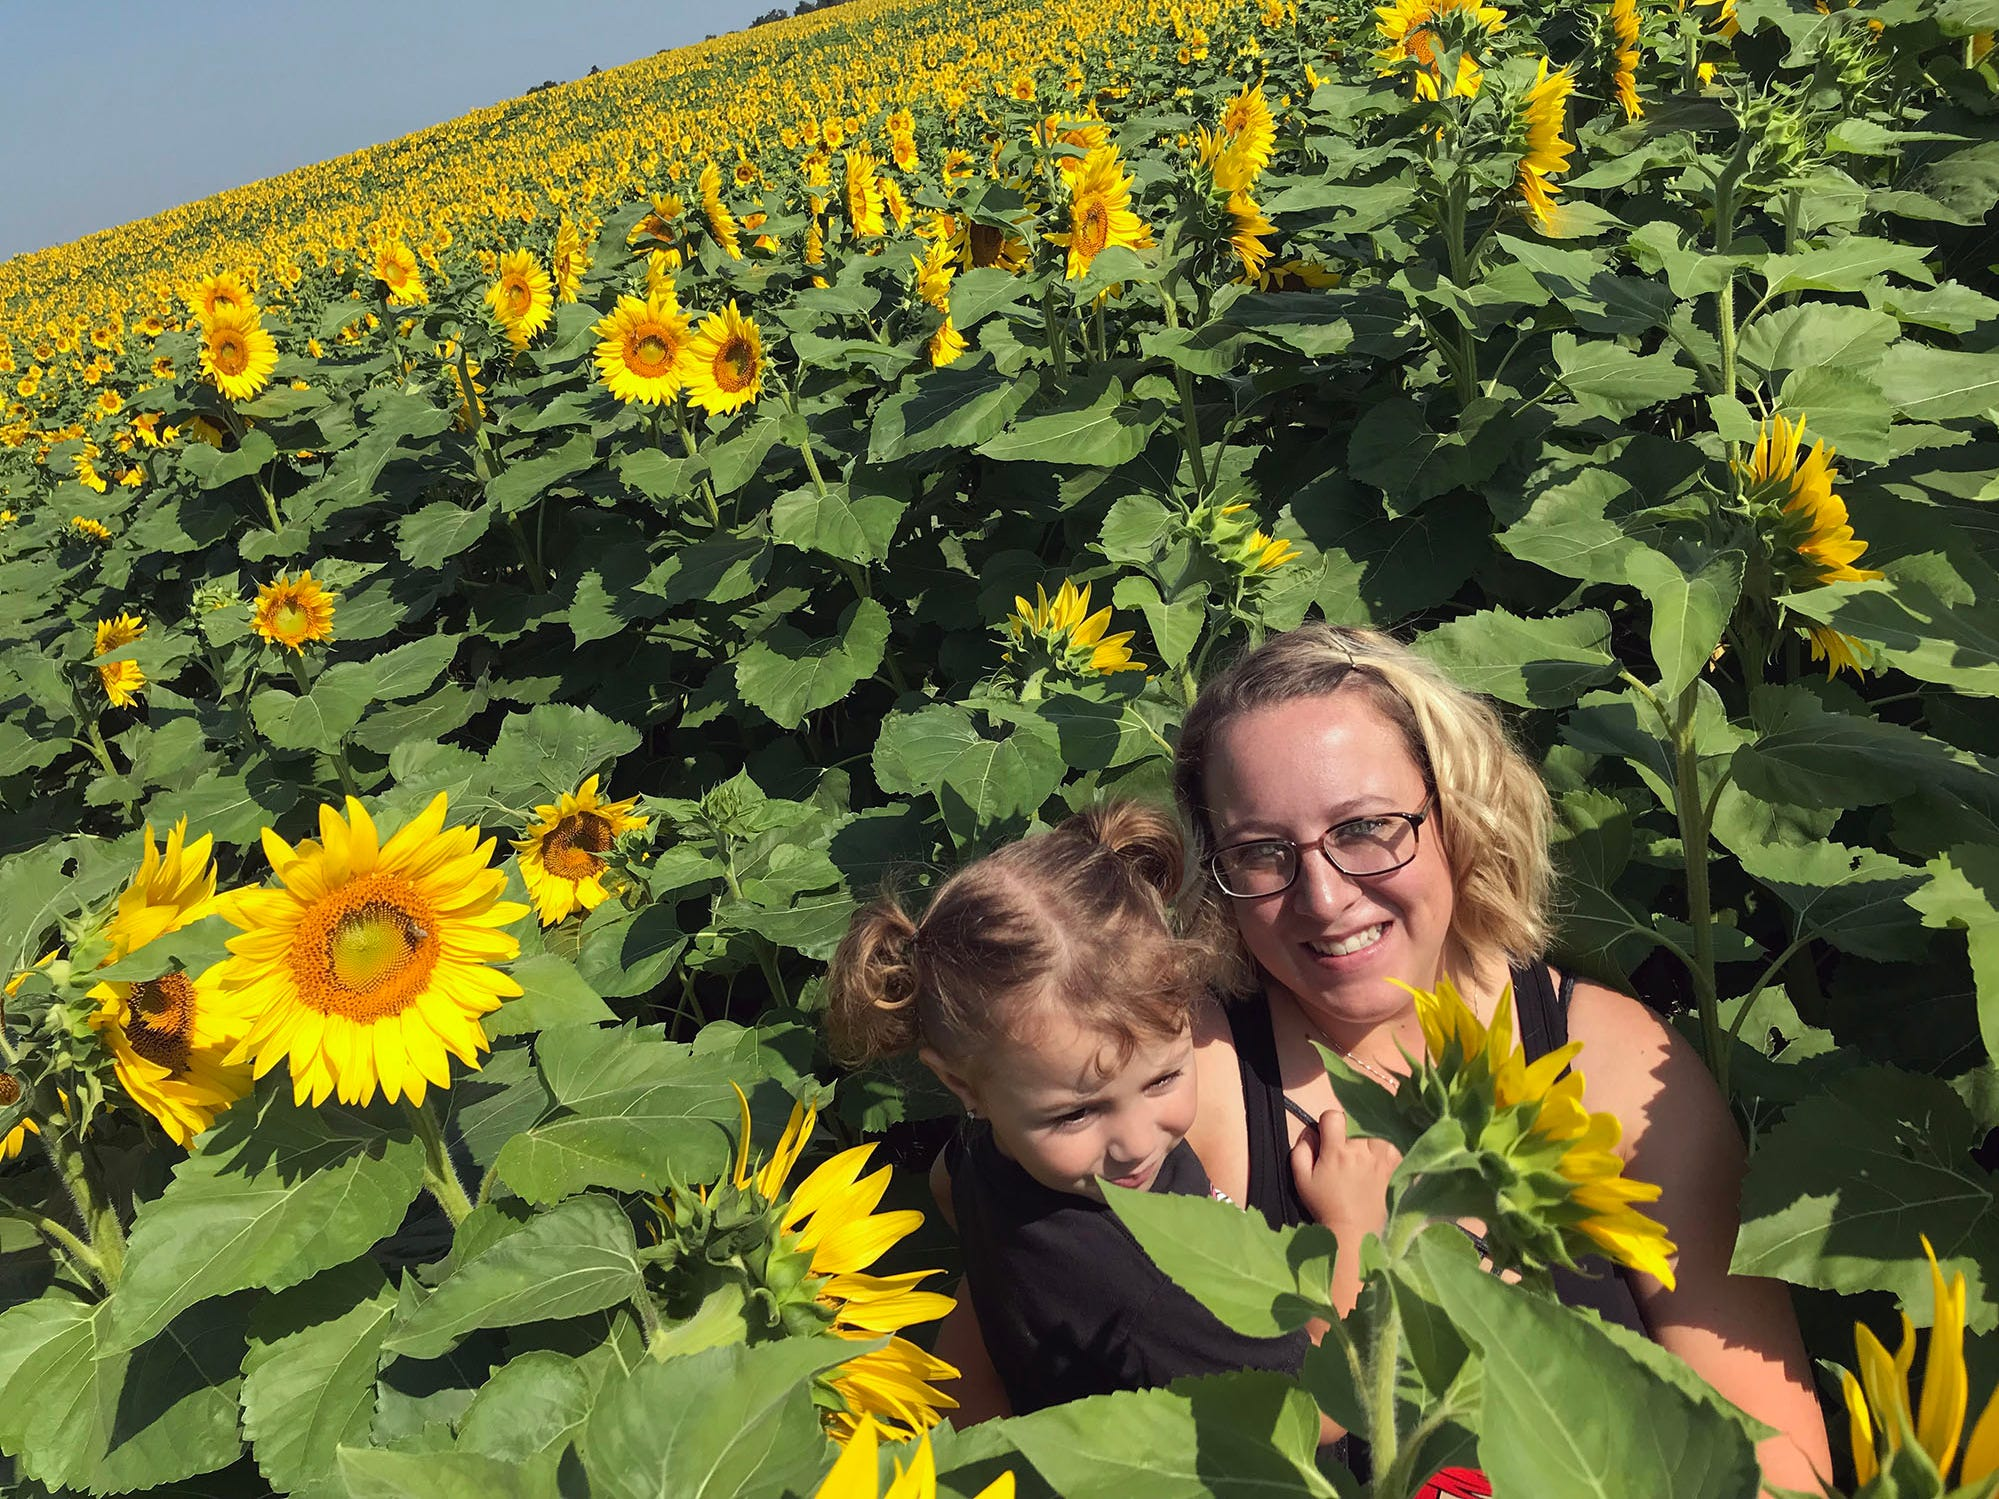 Three-year-old Kenley Welch and her mom, Kristen, check out sunflowers on Tuesday, August 28, 2018.A sunflower field is in bloom south of Chambersburg in Antrim Township. For several years, Lesher Poultry Farm has planted the sunflowers for visitors to enjoy. This year's location is at Marion Road (near Talhelm Rd.), off Interstate 81, Exit 10.